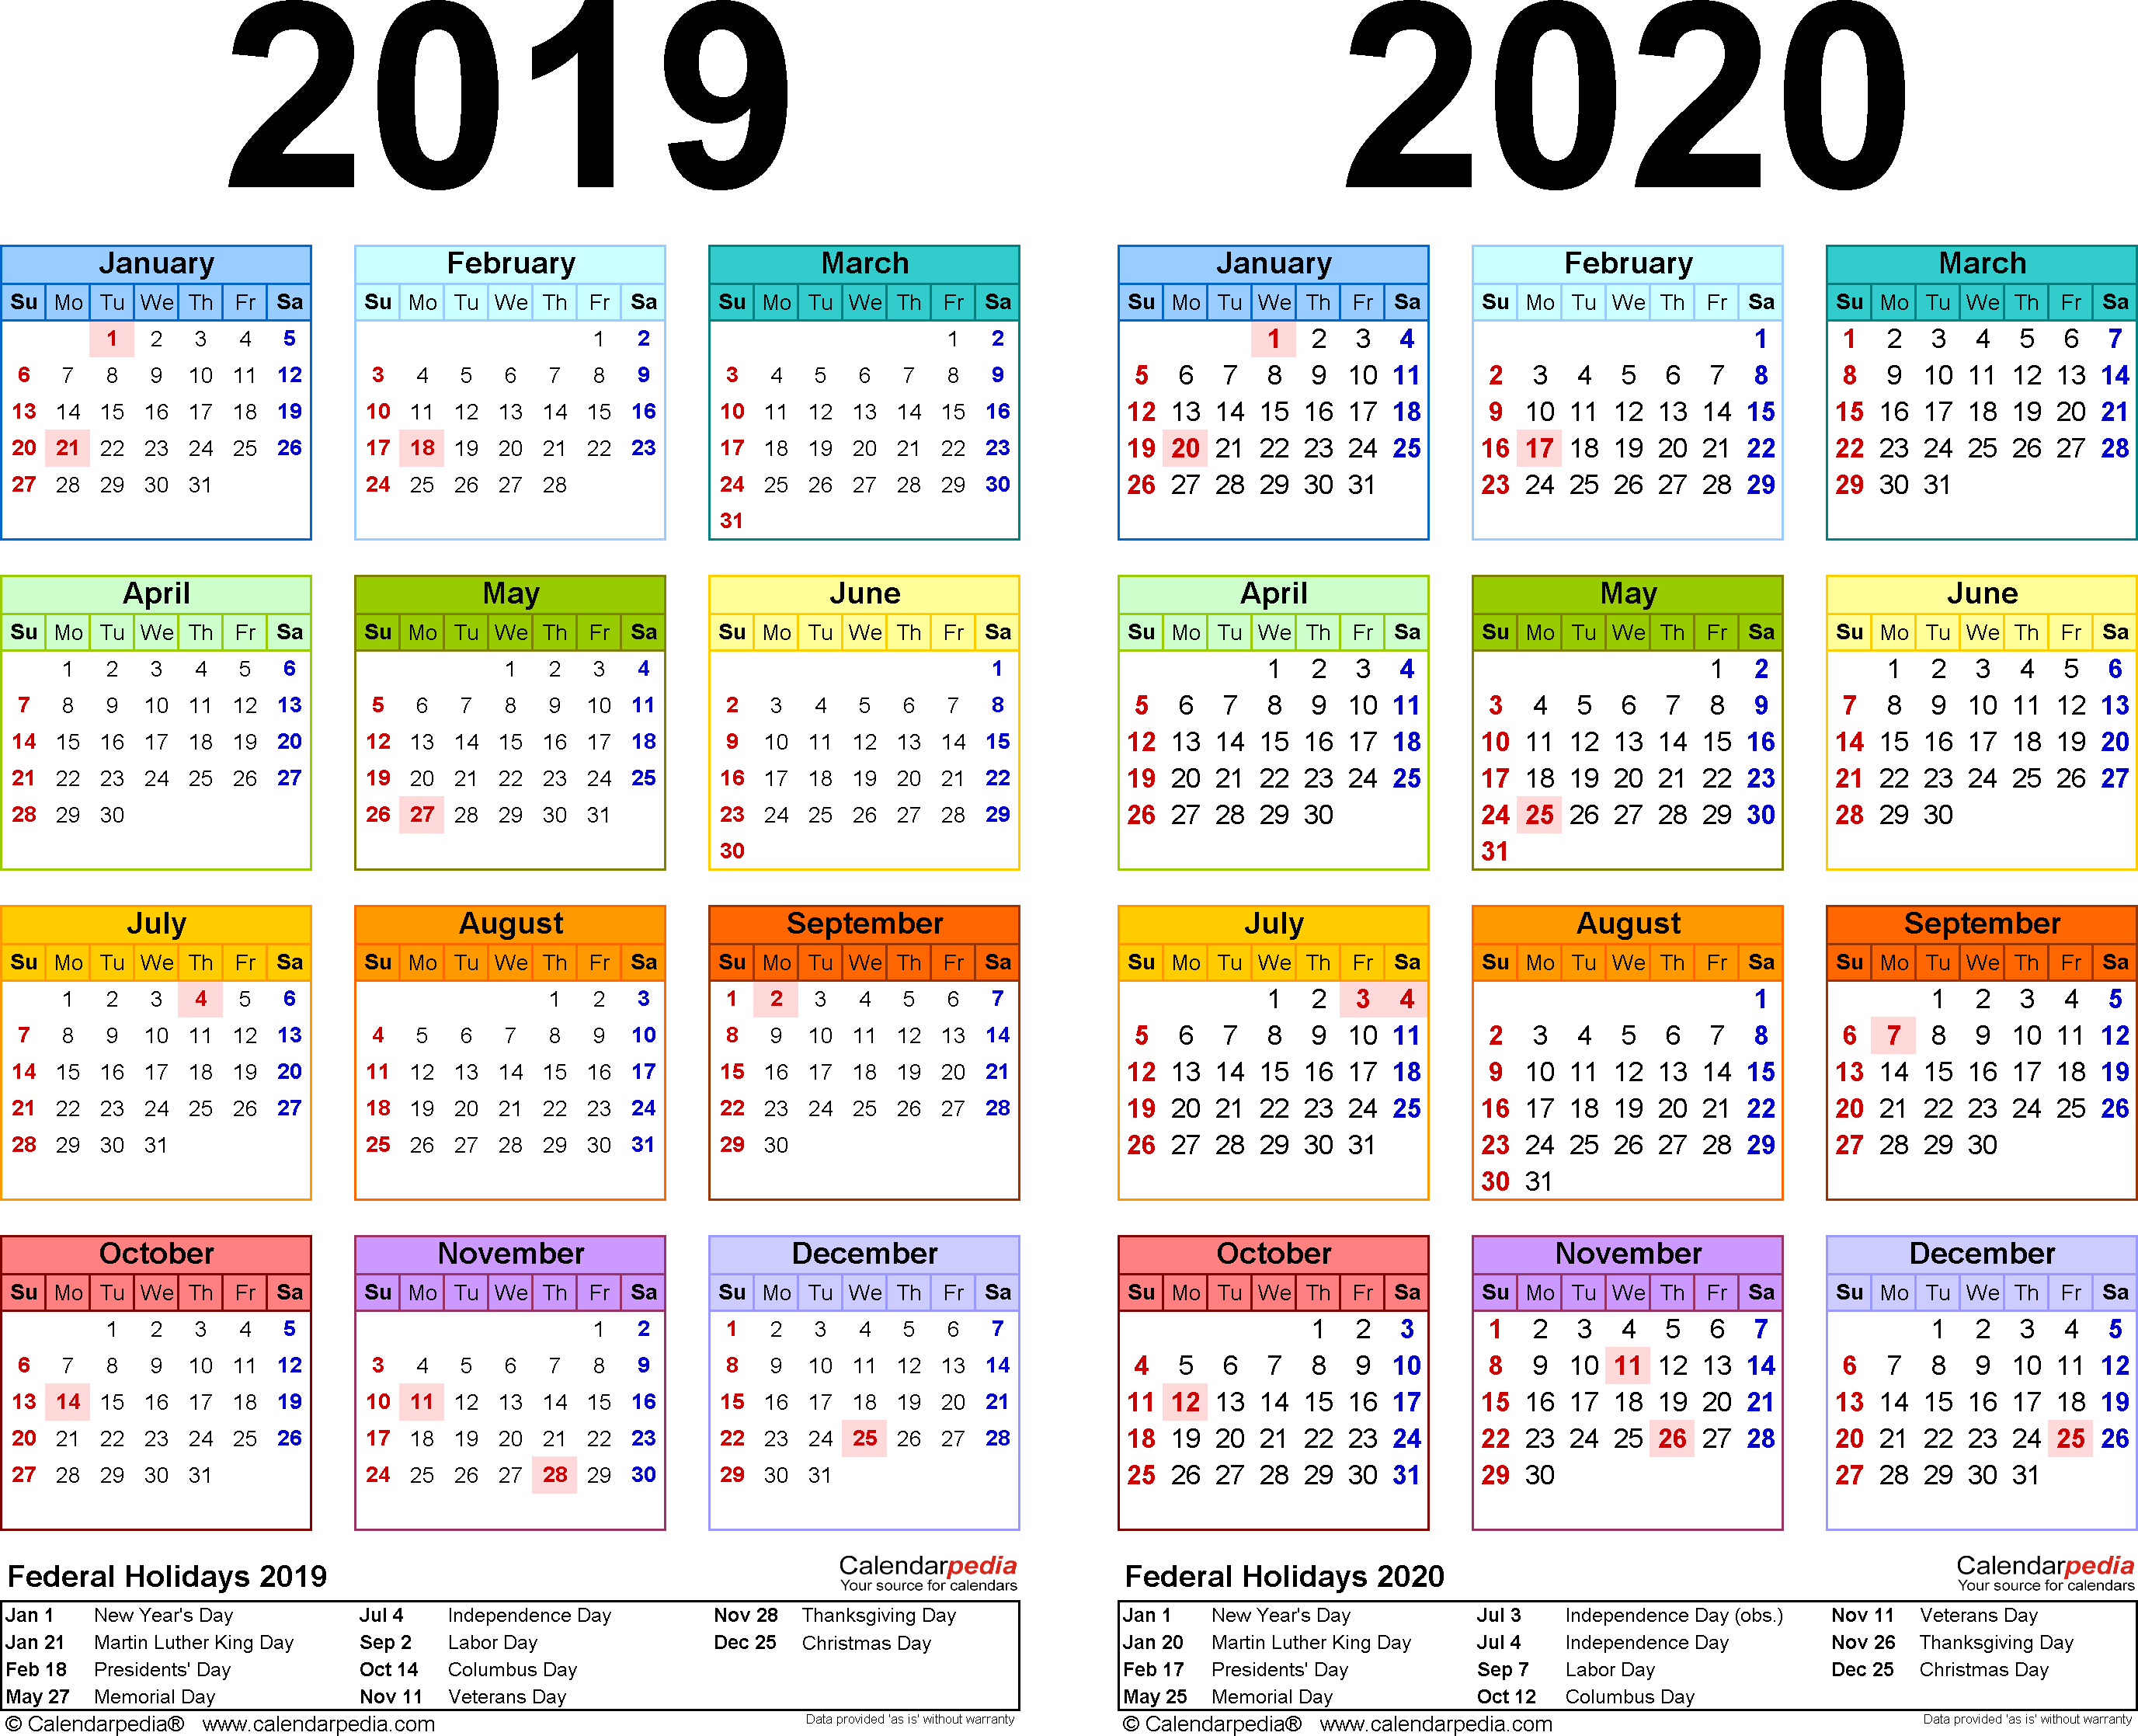 2019-2020 Calendar - Free Printable Two-Year Word Calendars for Calendar For Rest Of 2019 And 2020